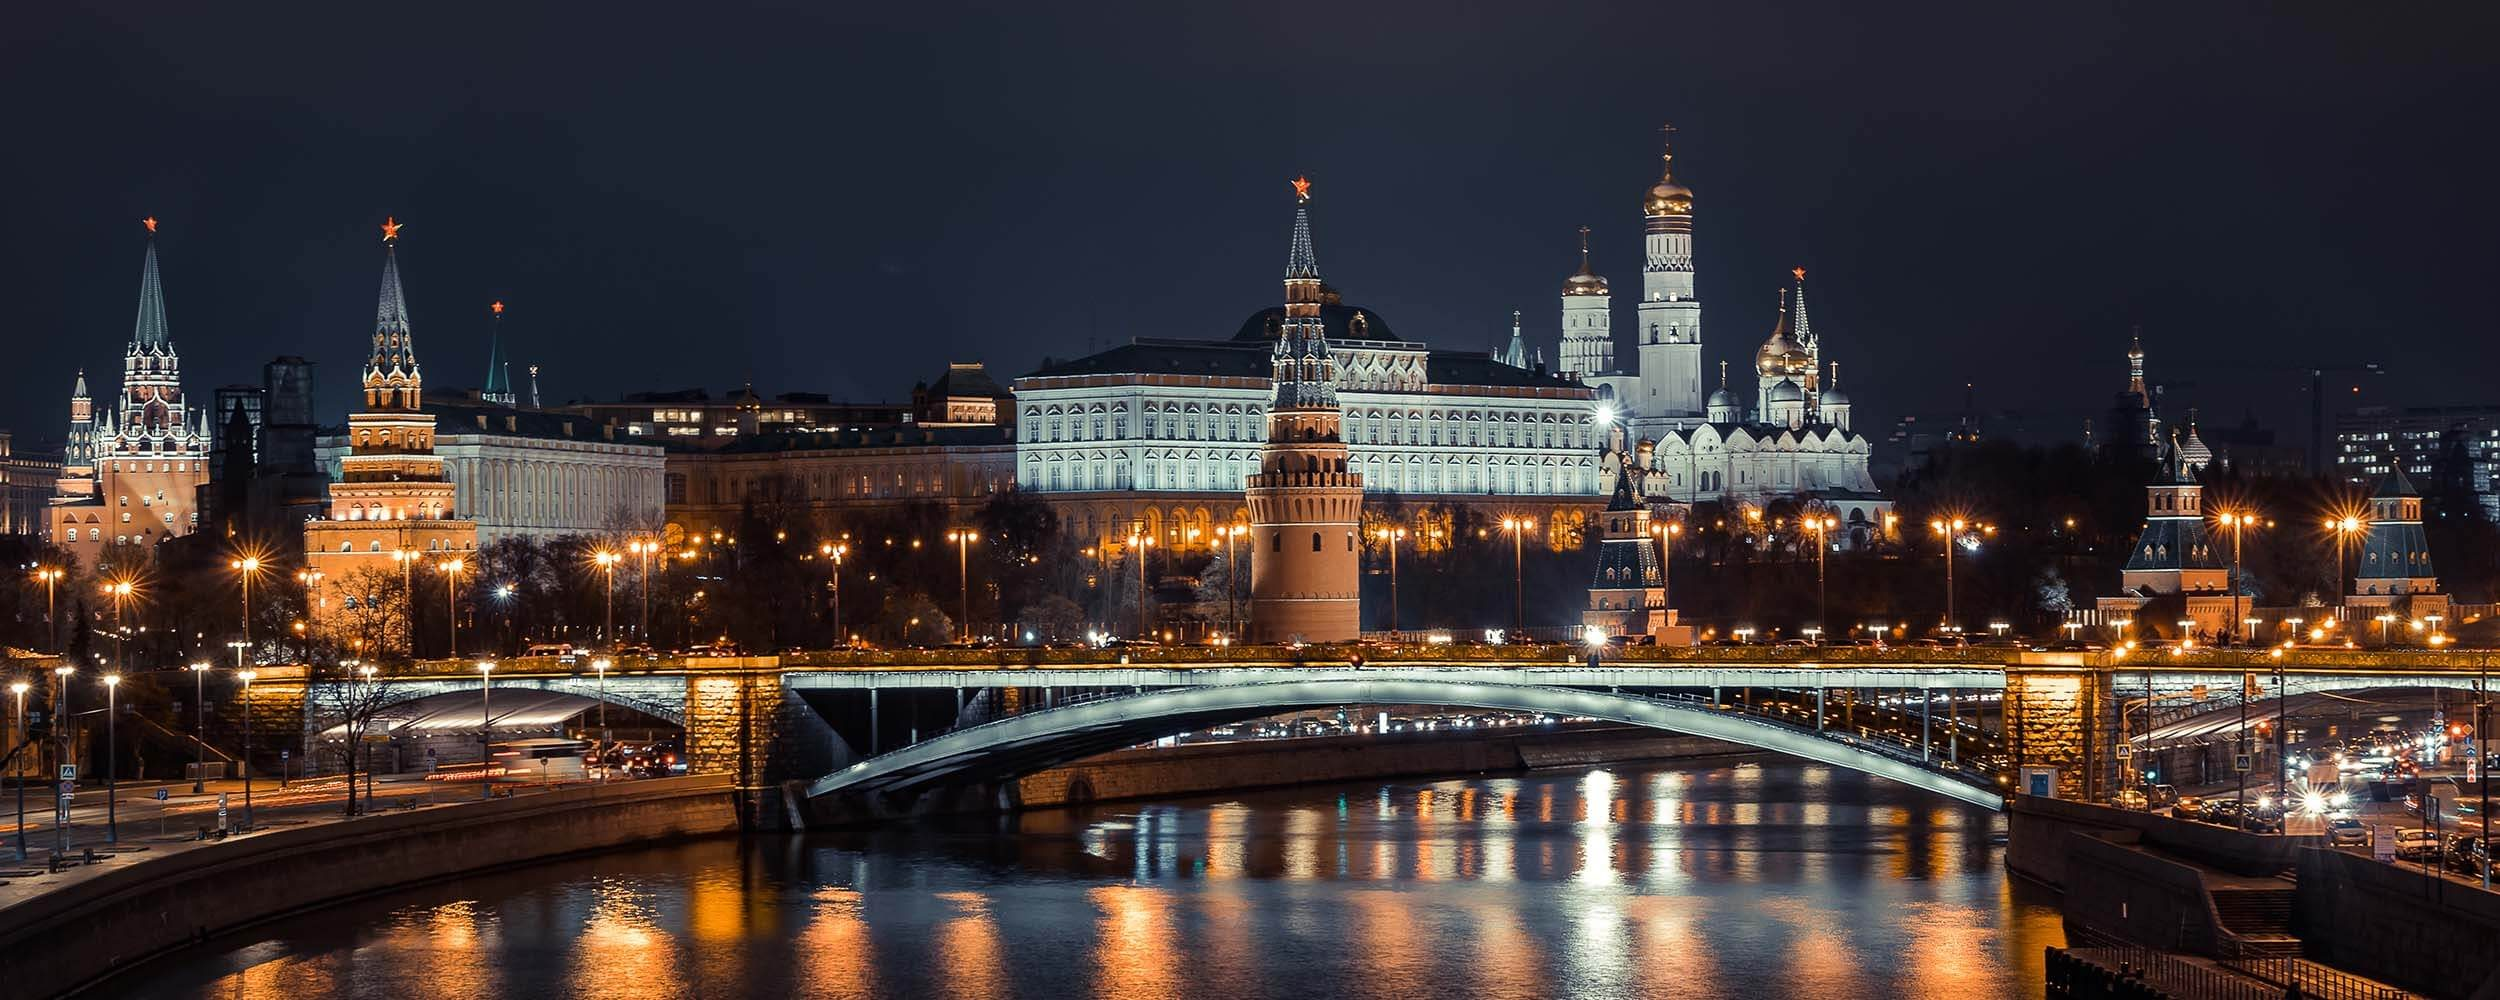 Russia river at night